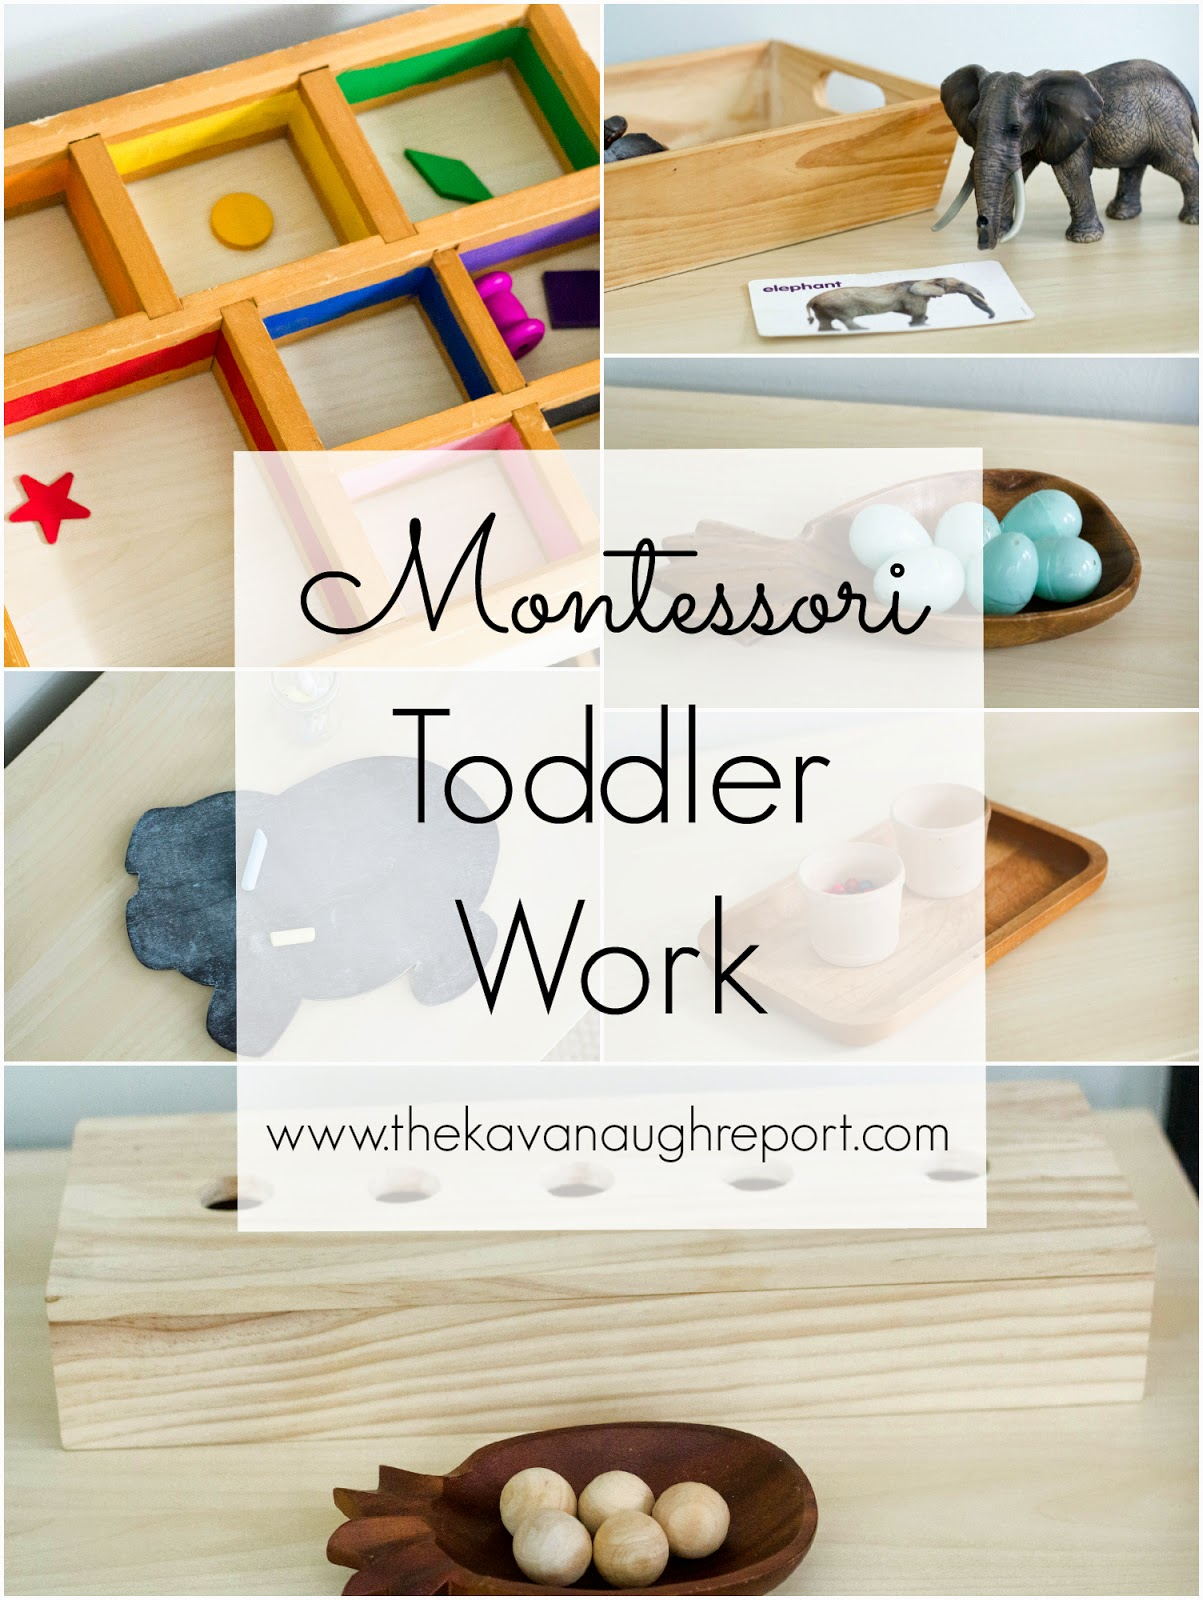 How do you keep toddlers busy in a homeschool classroom? Here are some Montessori inspired ideas on how to make homeschooling work with toddlers.